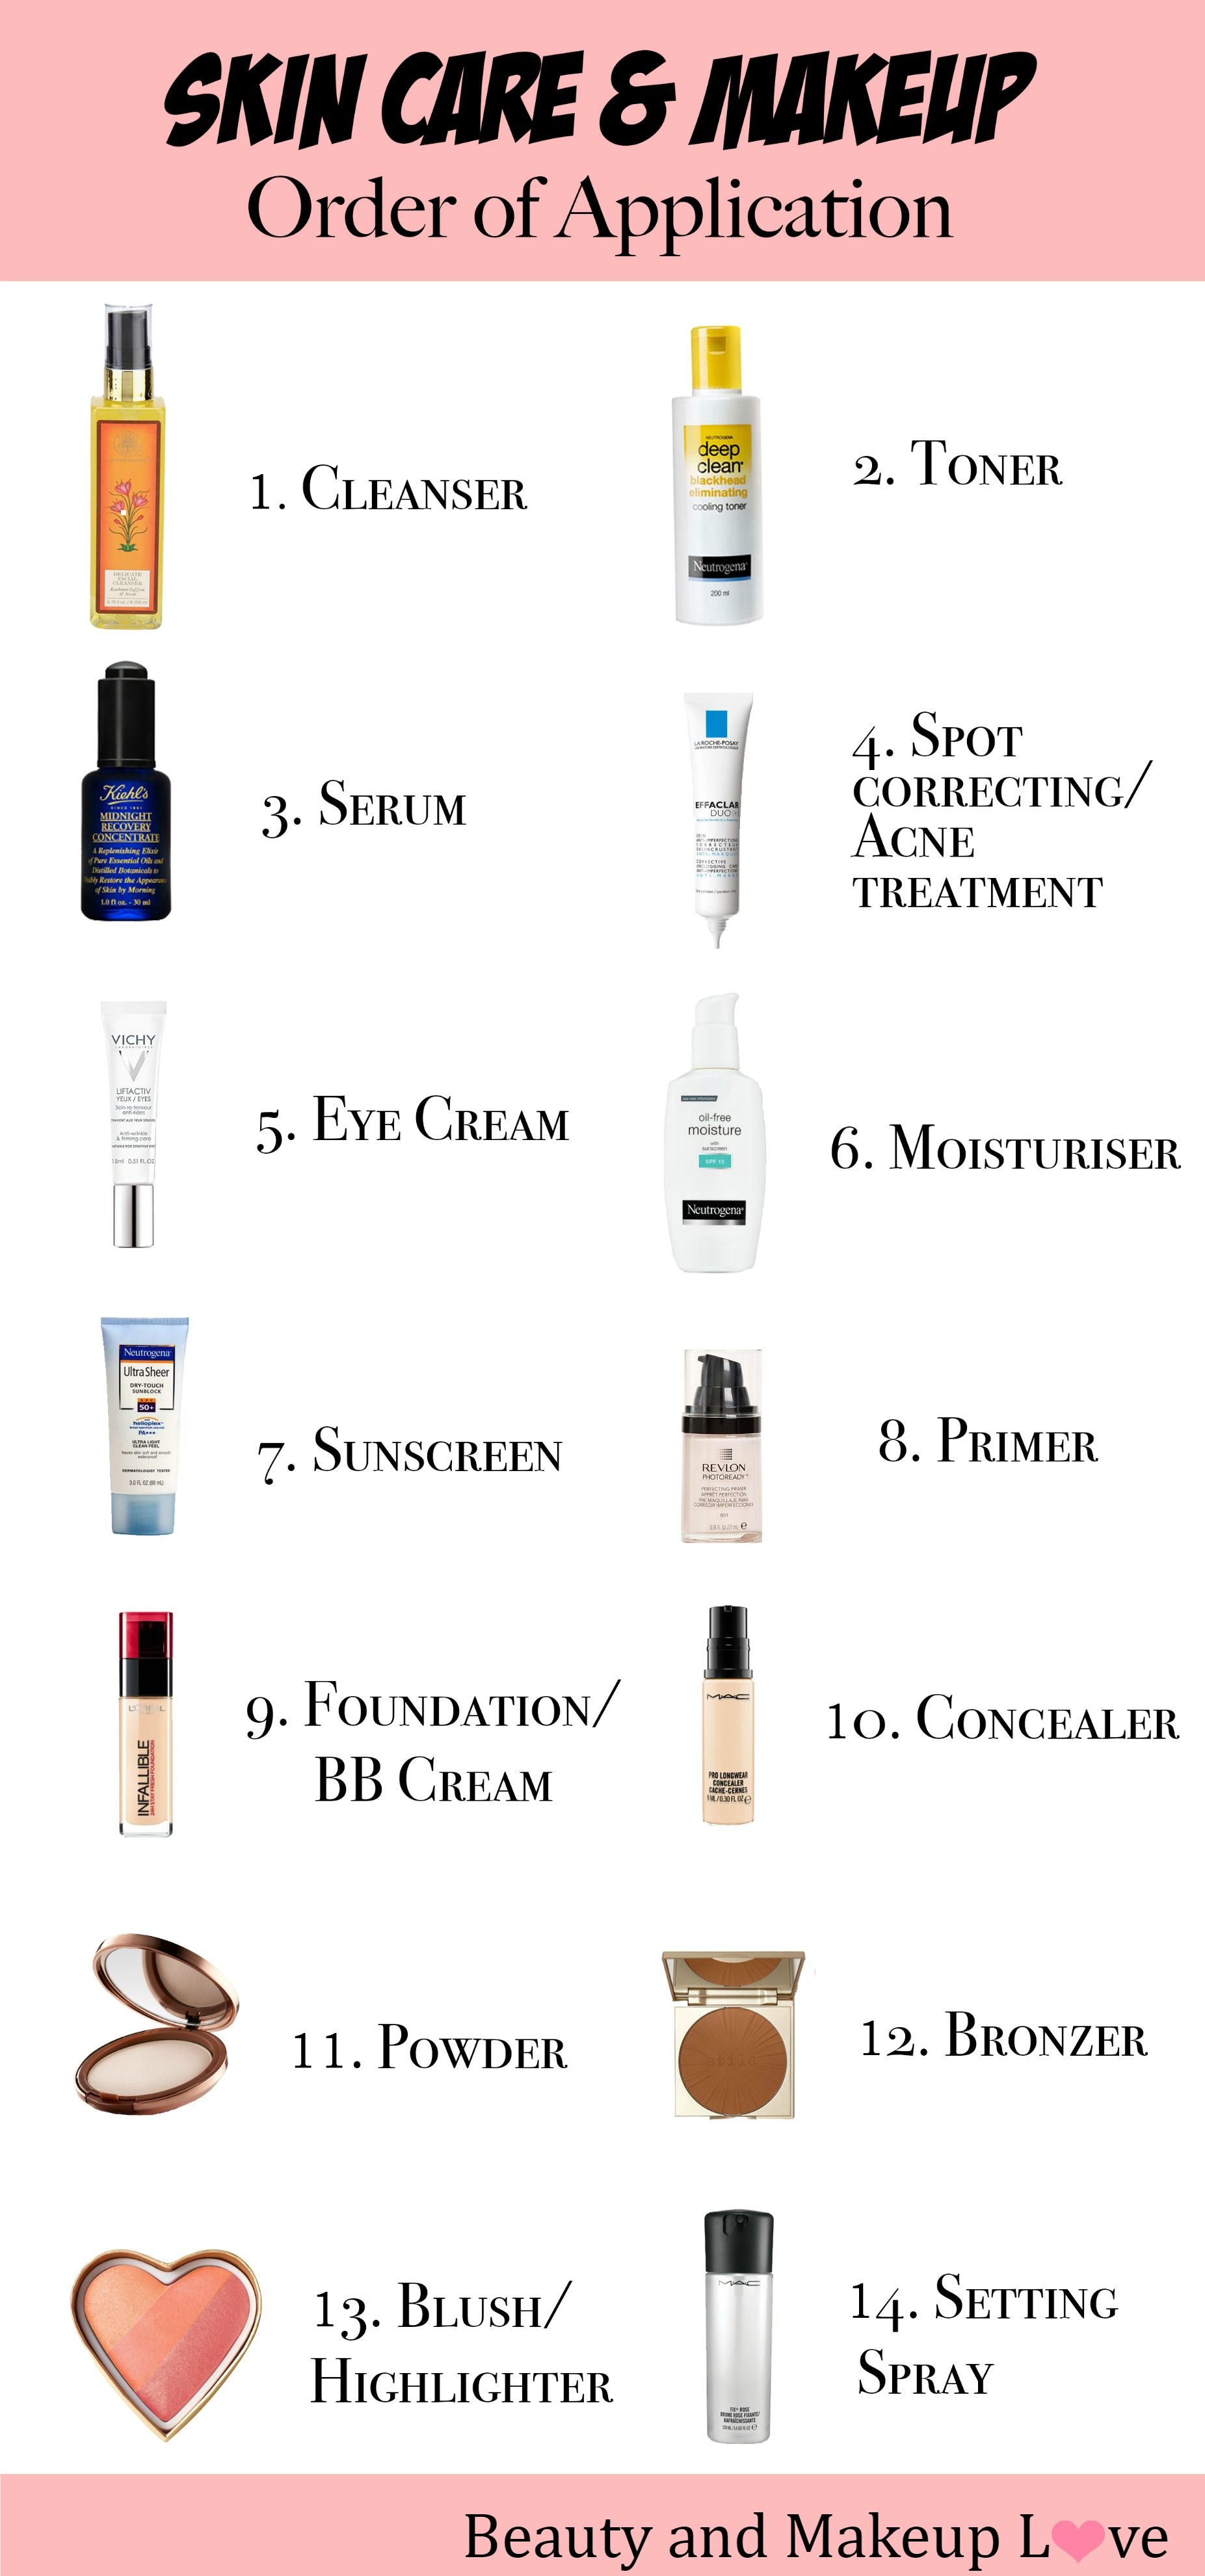 Face Products: Order of Application